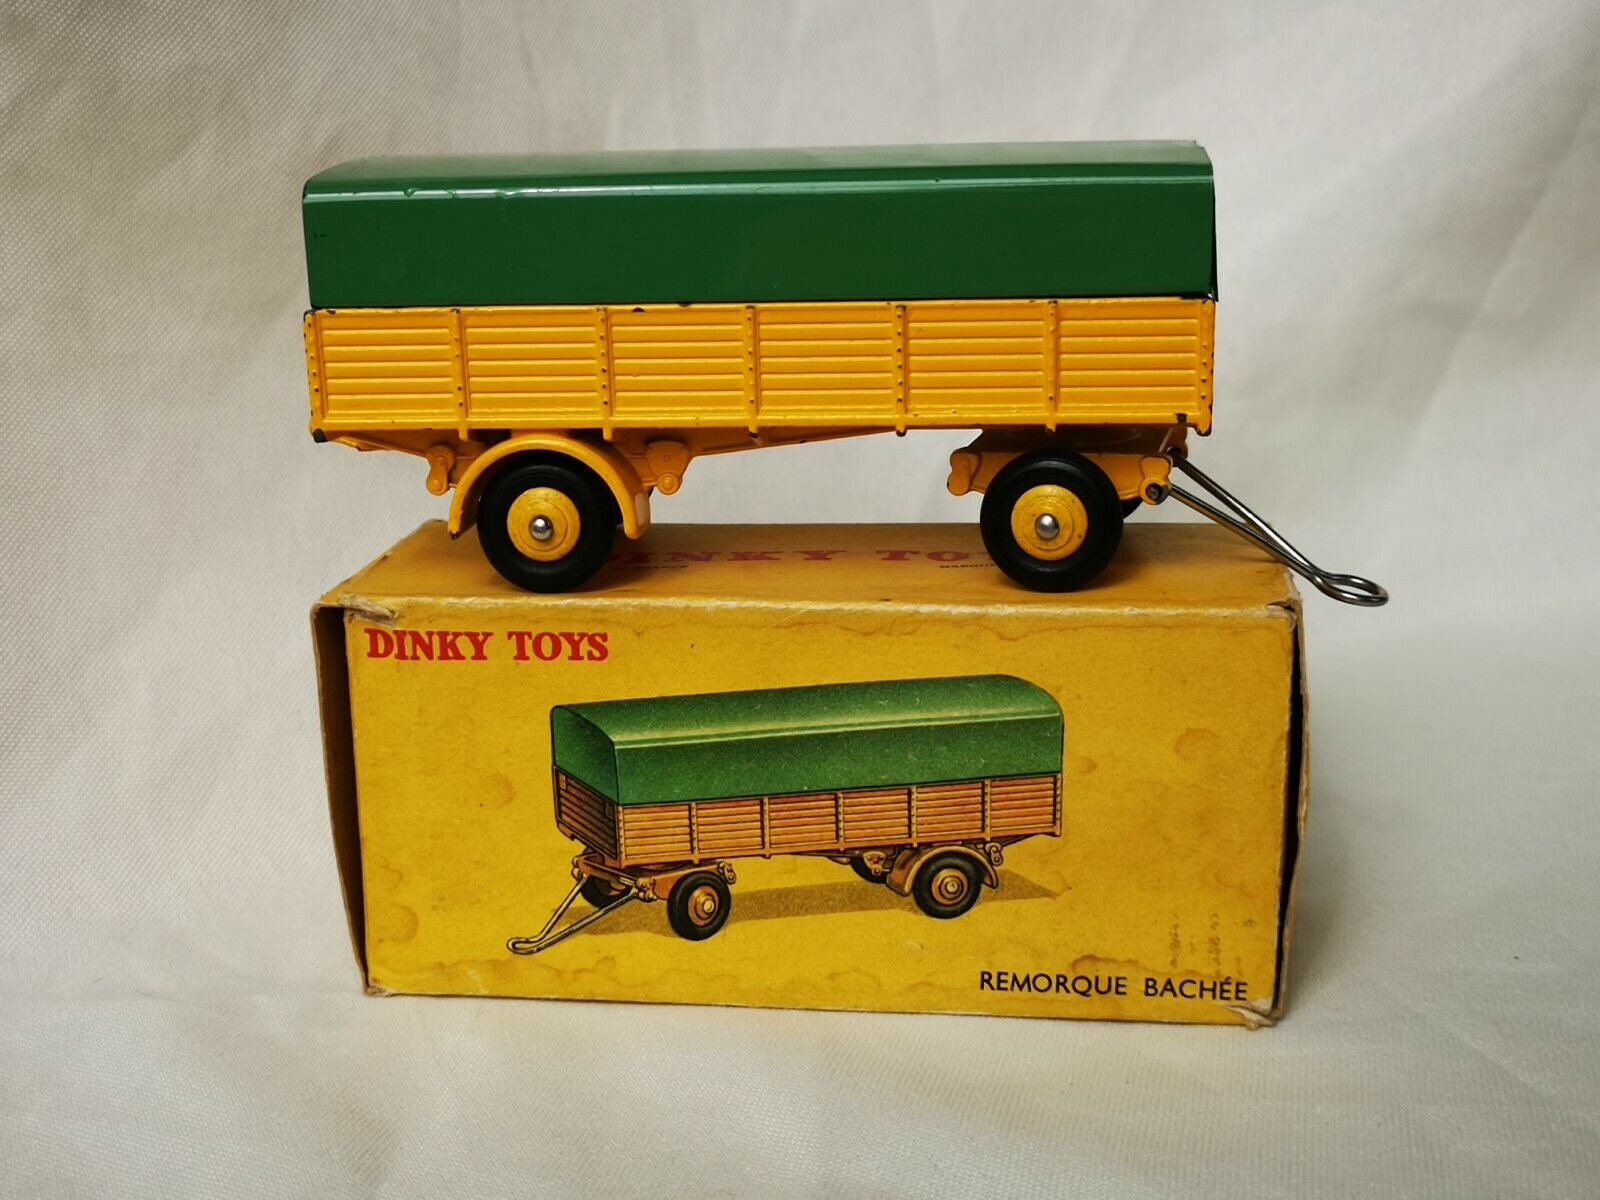 Dinky TOYS No. 70 Trailer Covered Trailer REMORQUE bachée Boxed